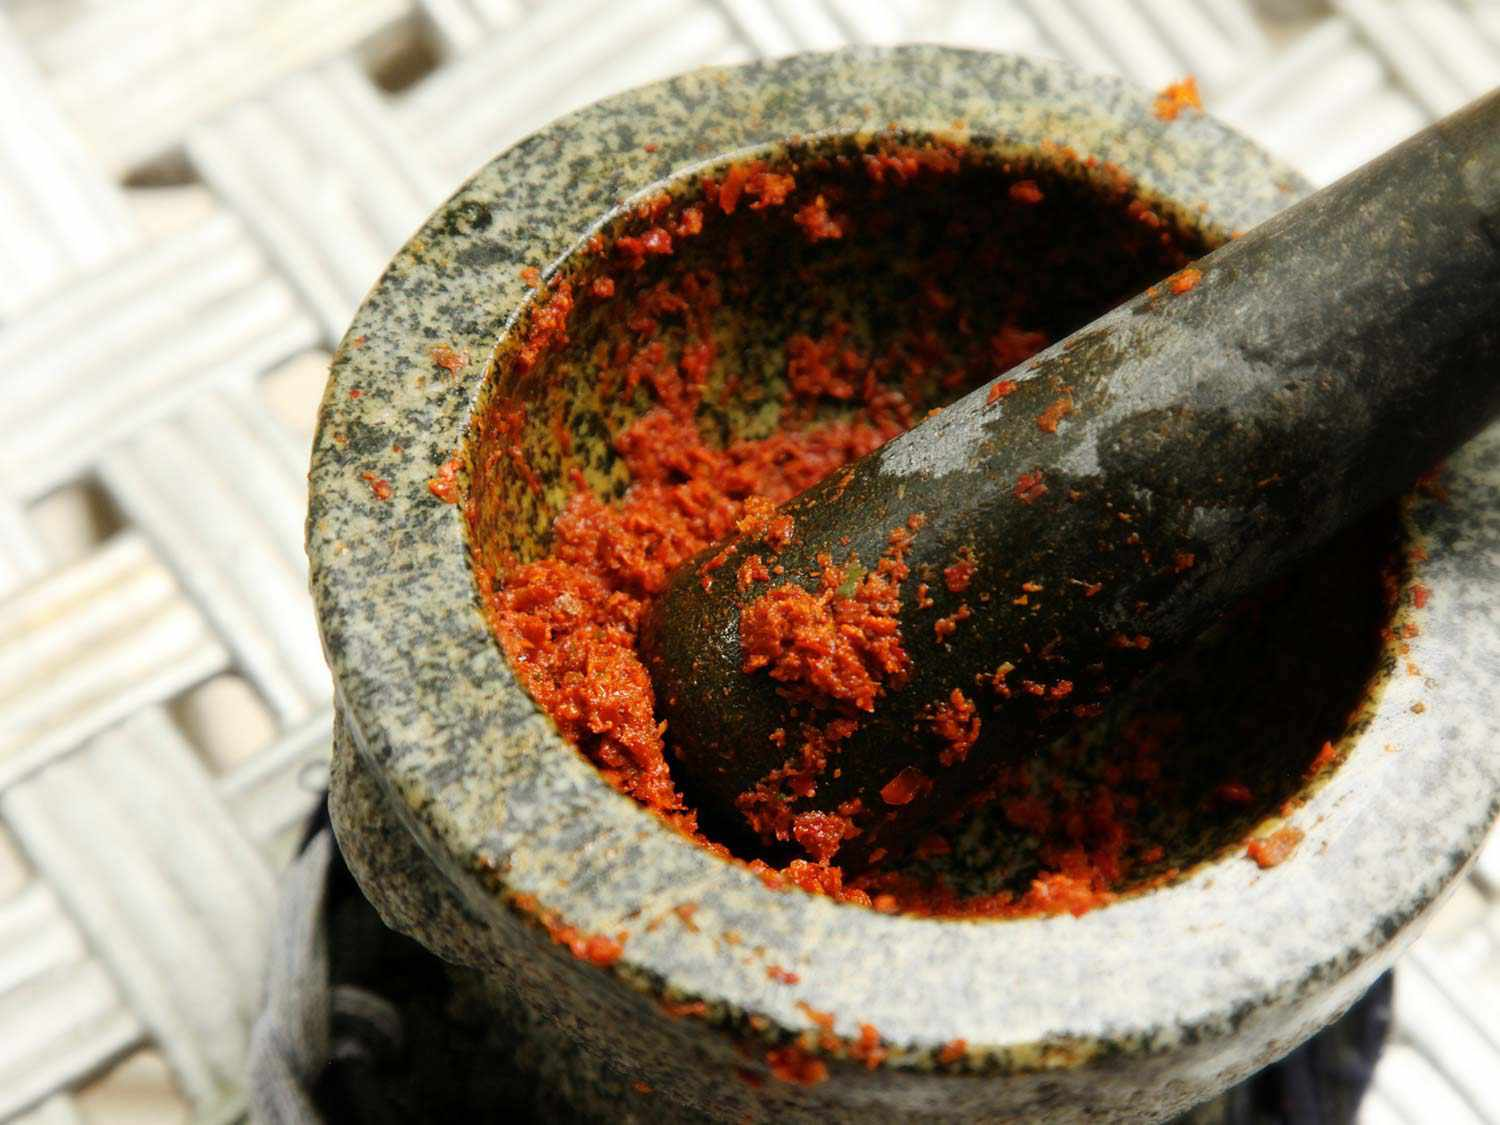 Pounding curry paste for Khao Soi Gai in a granite mortar and pestle.